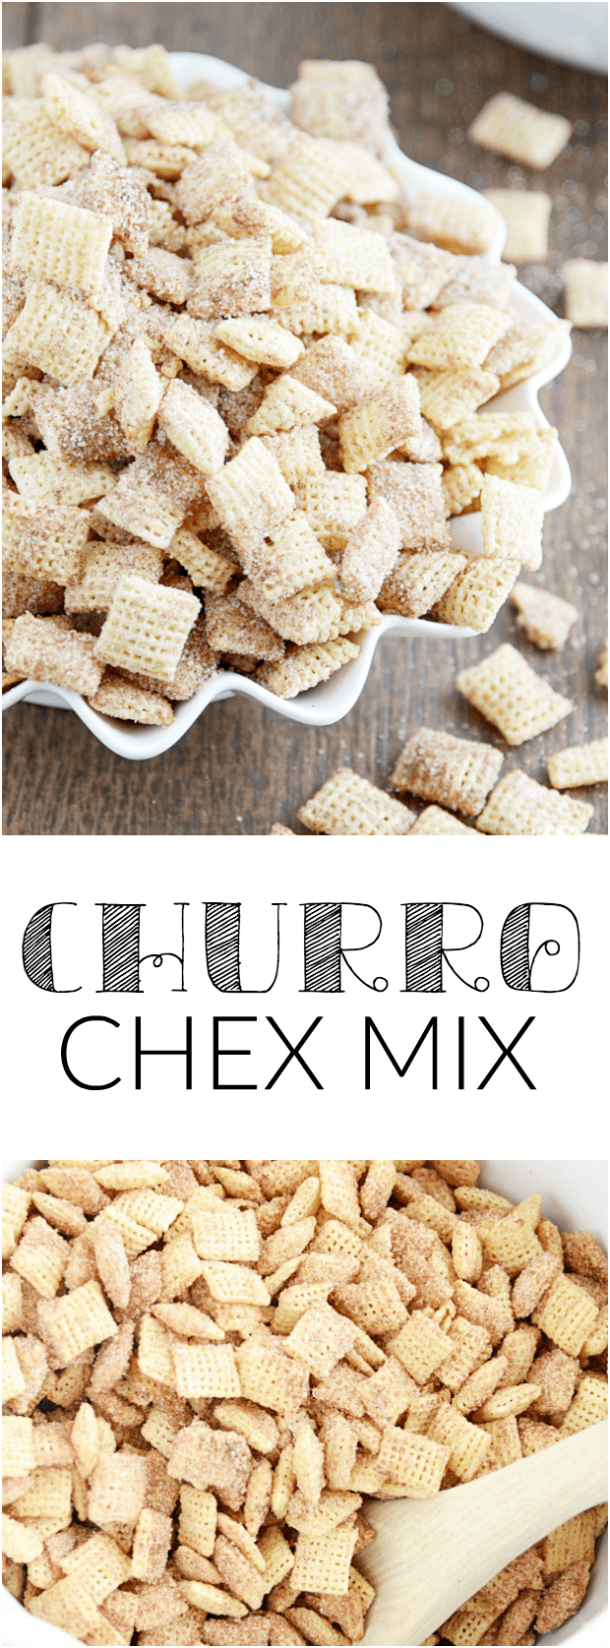 Allergy Friendly Churro Chex Mix